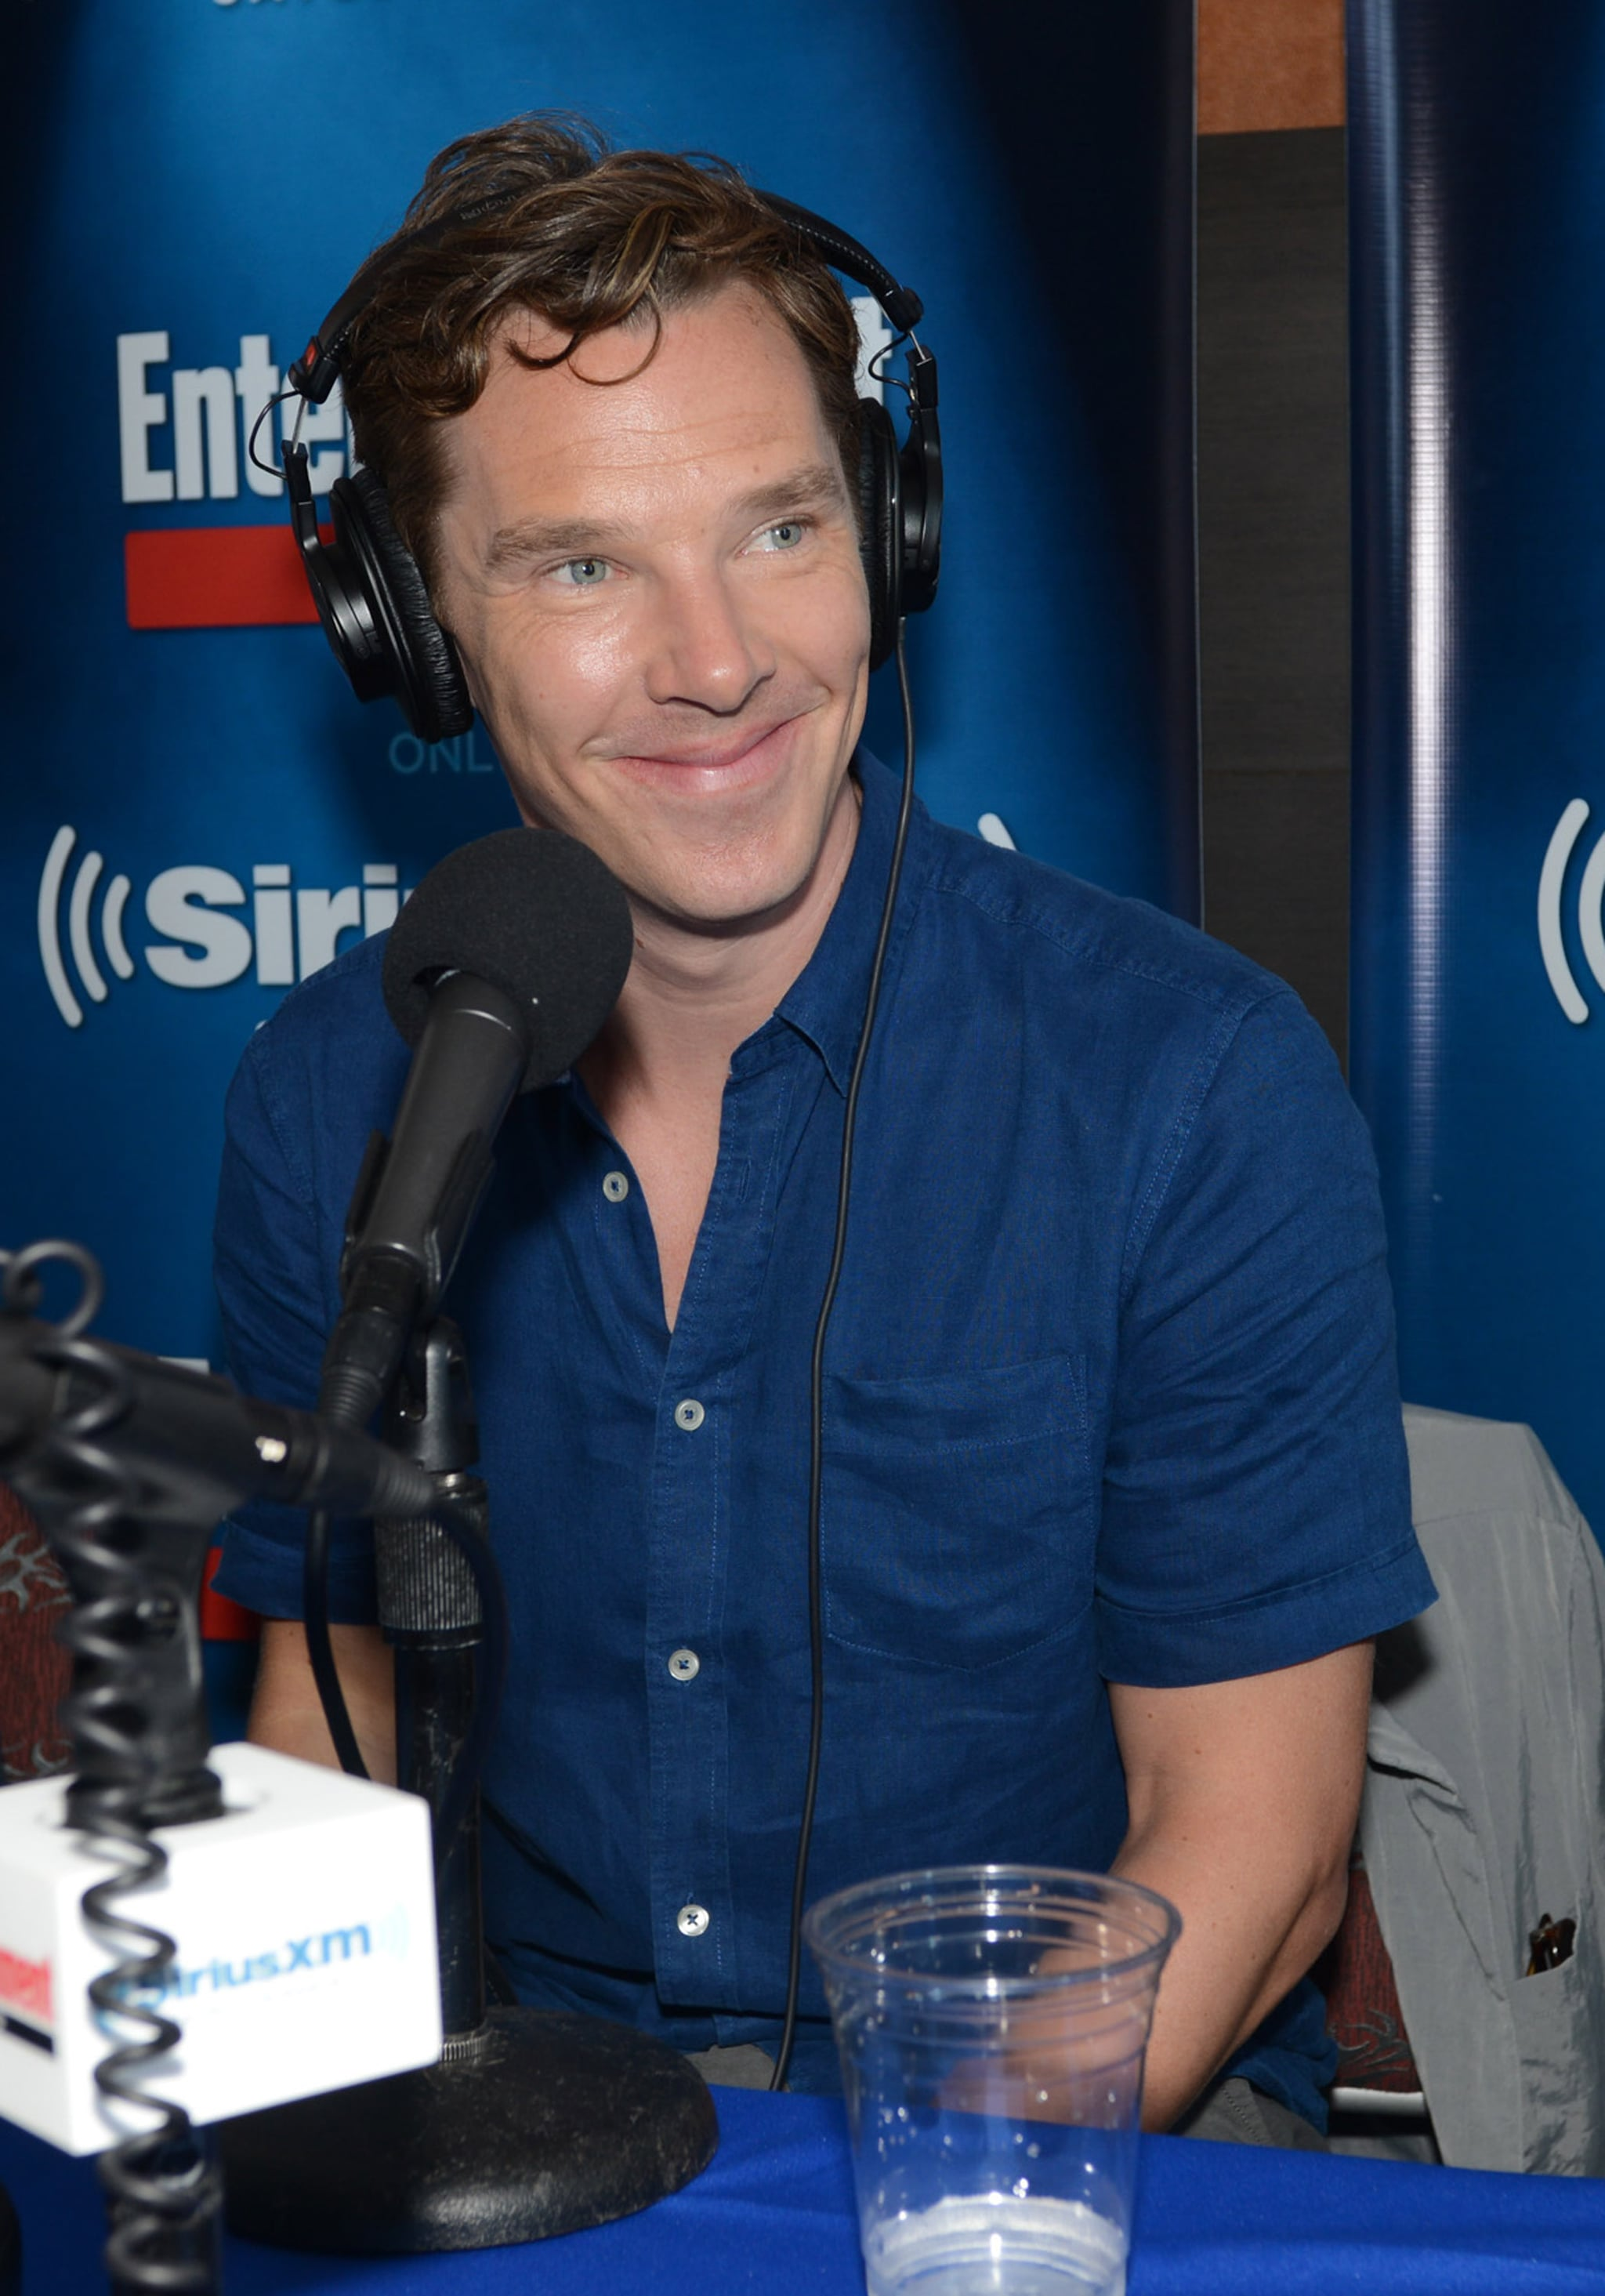 Benedict Cumberbatch sat down for a SiriusXM interview on Thursday.